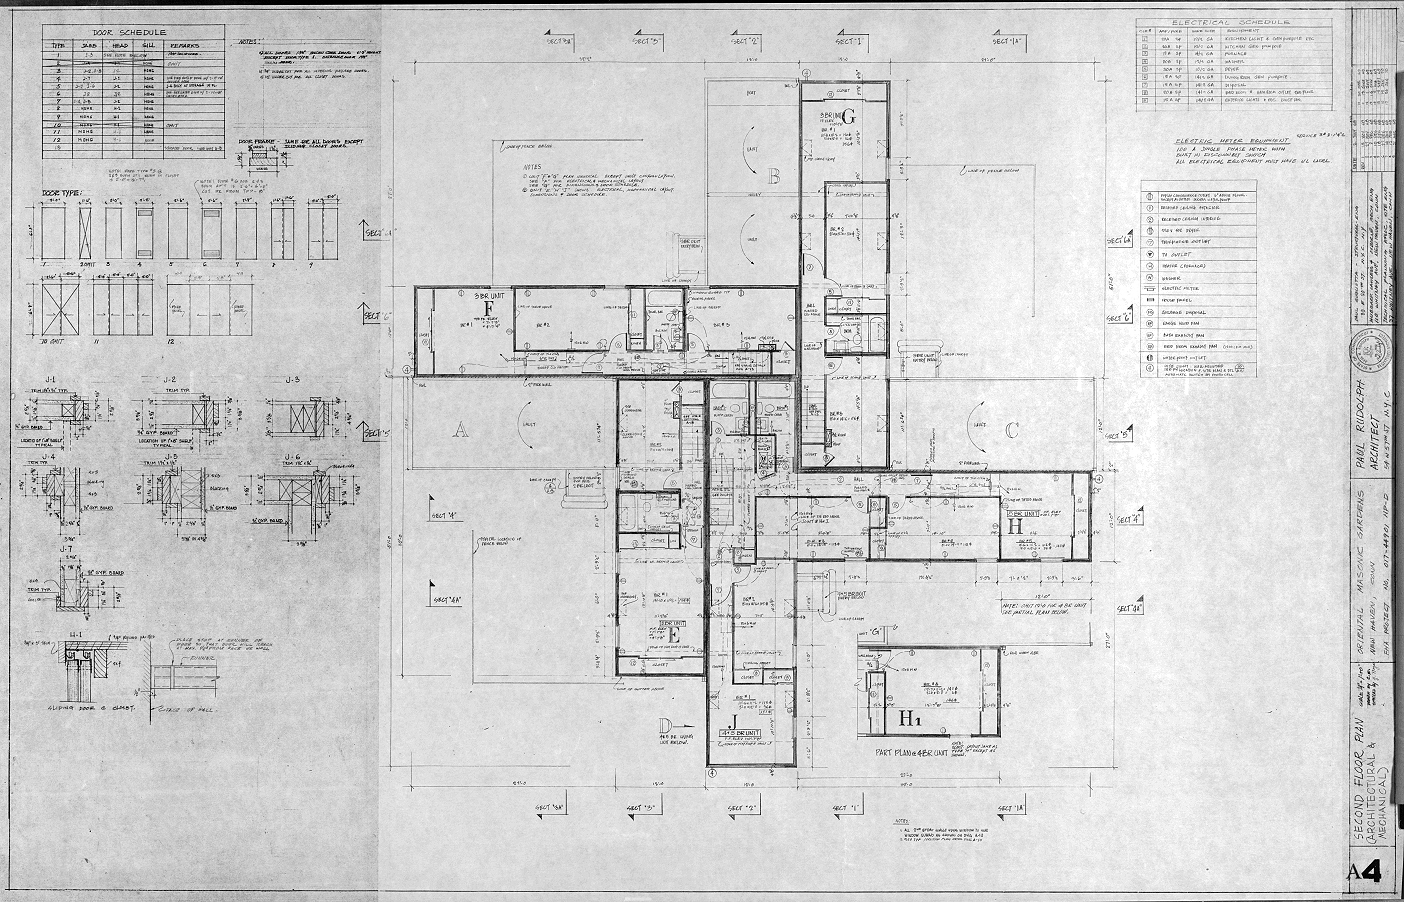 Oriental Masonic Gardens, Wilmot Road, New Haven, Connecticut. Second Floor Plan (Arch & Mech), Sheet A-4